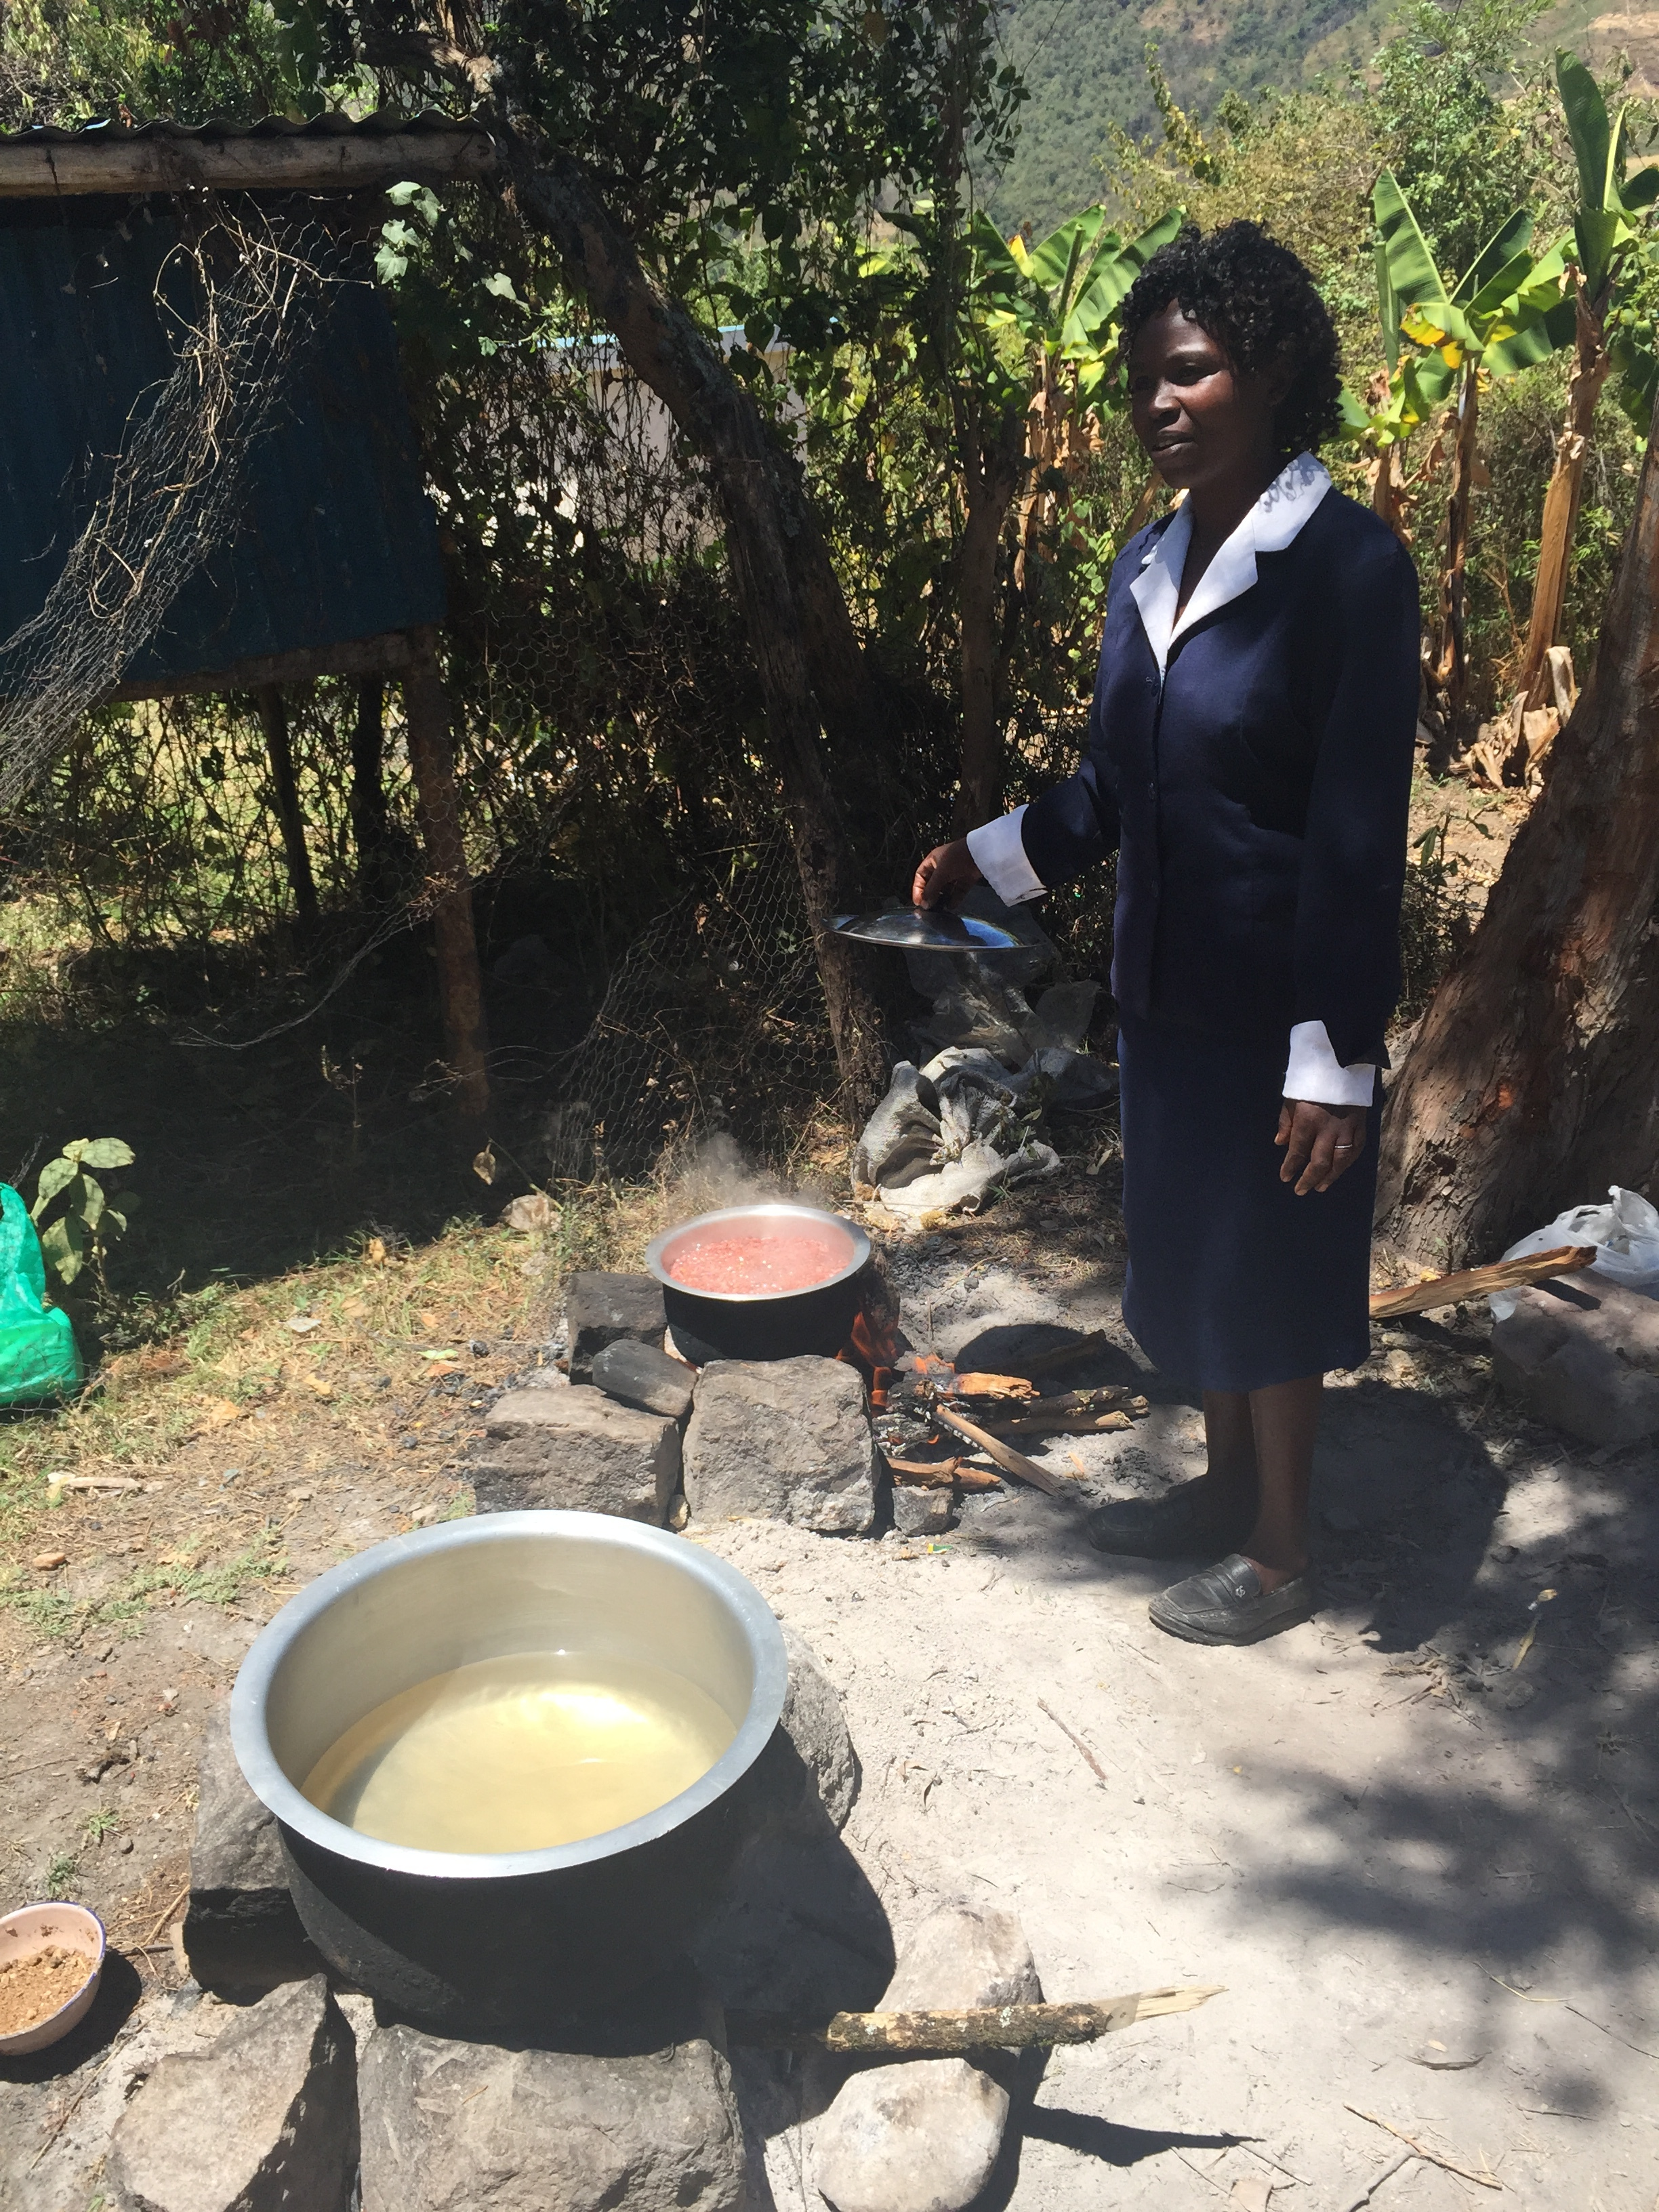 The teacher of the nursery school explains the cooking pots. One for rice and the other for beans.